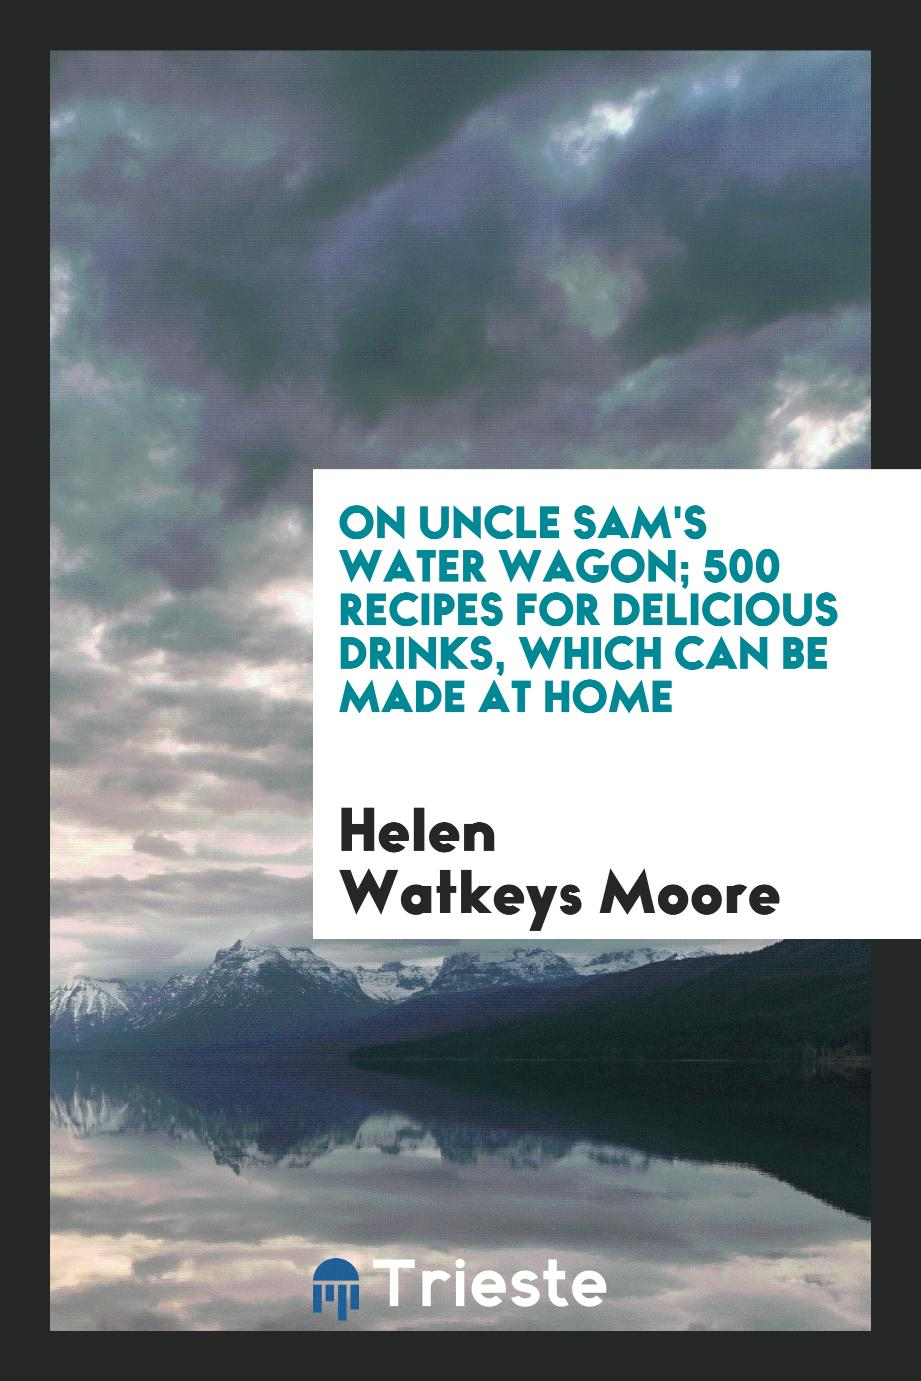 On Uncle Sam's water wagon; 500 recipes for delicious drinks, which can be made at home